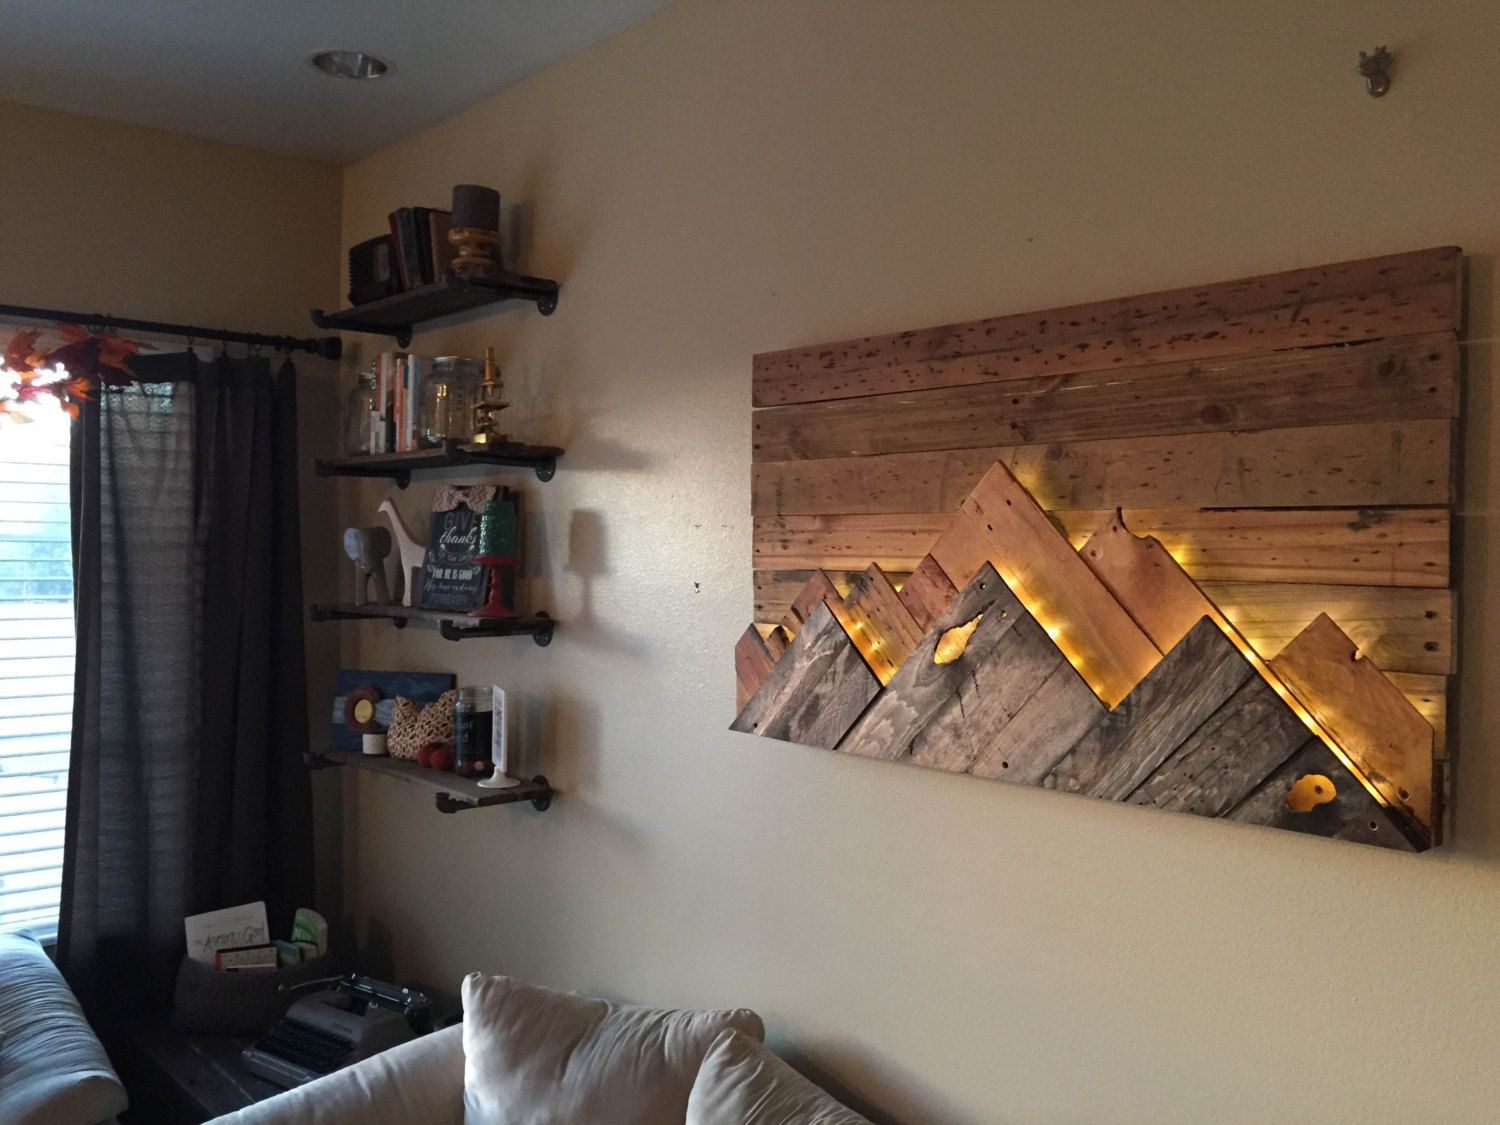 Wooden Mountain Range Wall Art By 234studios On Etsy Projects